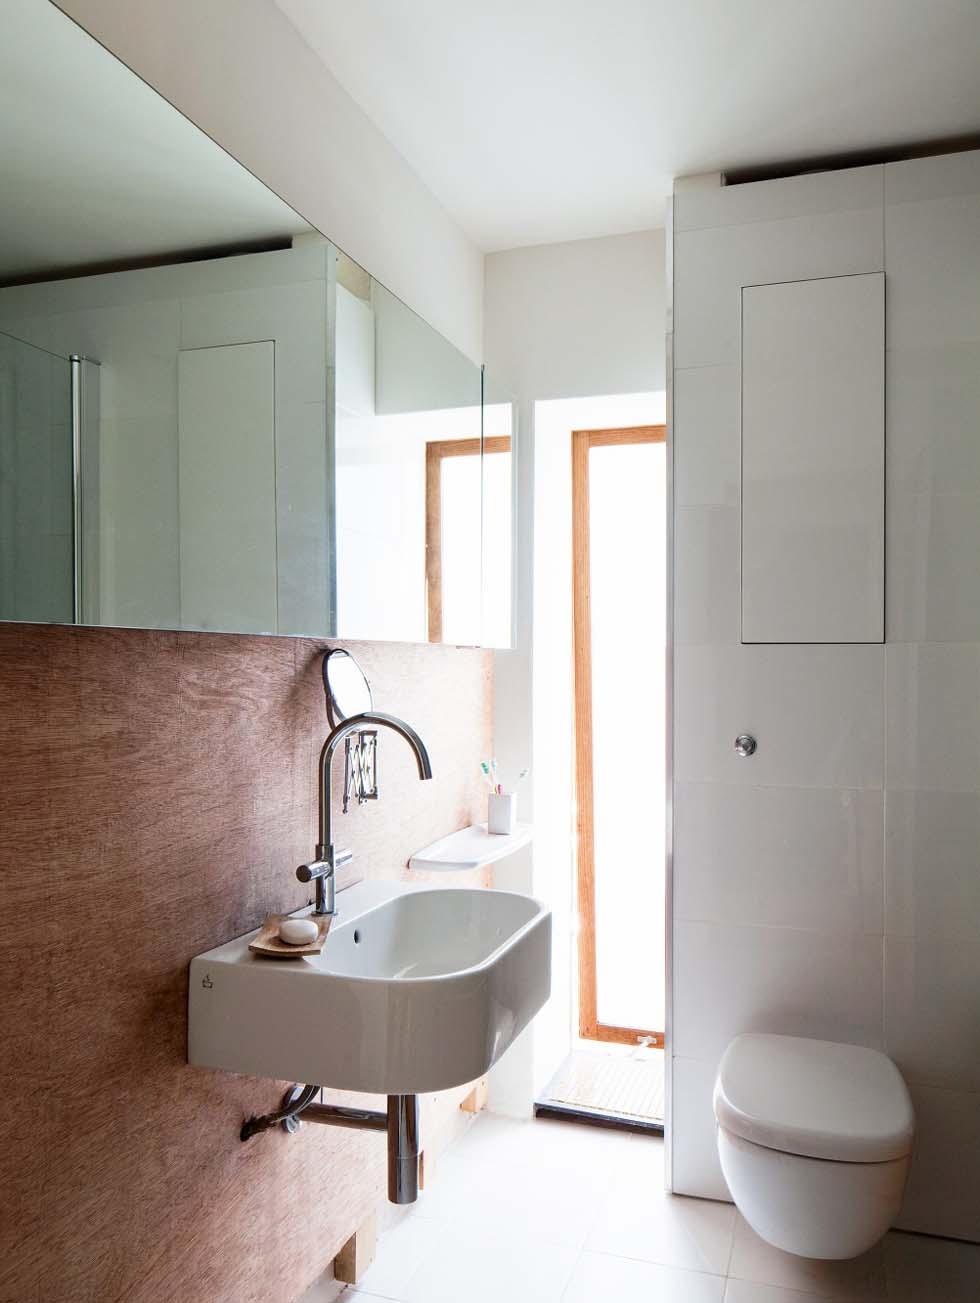 Frosted slot windows in the bathroom draw in plenty of light but offer maximum privacy